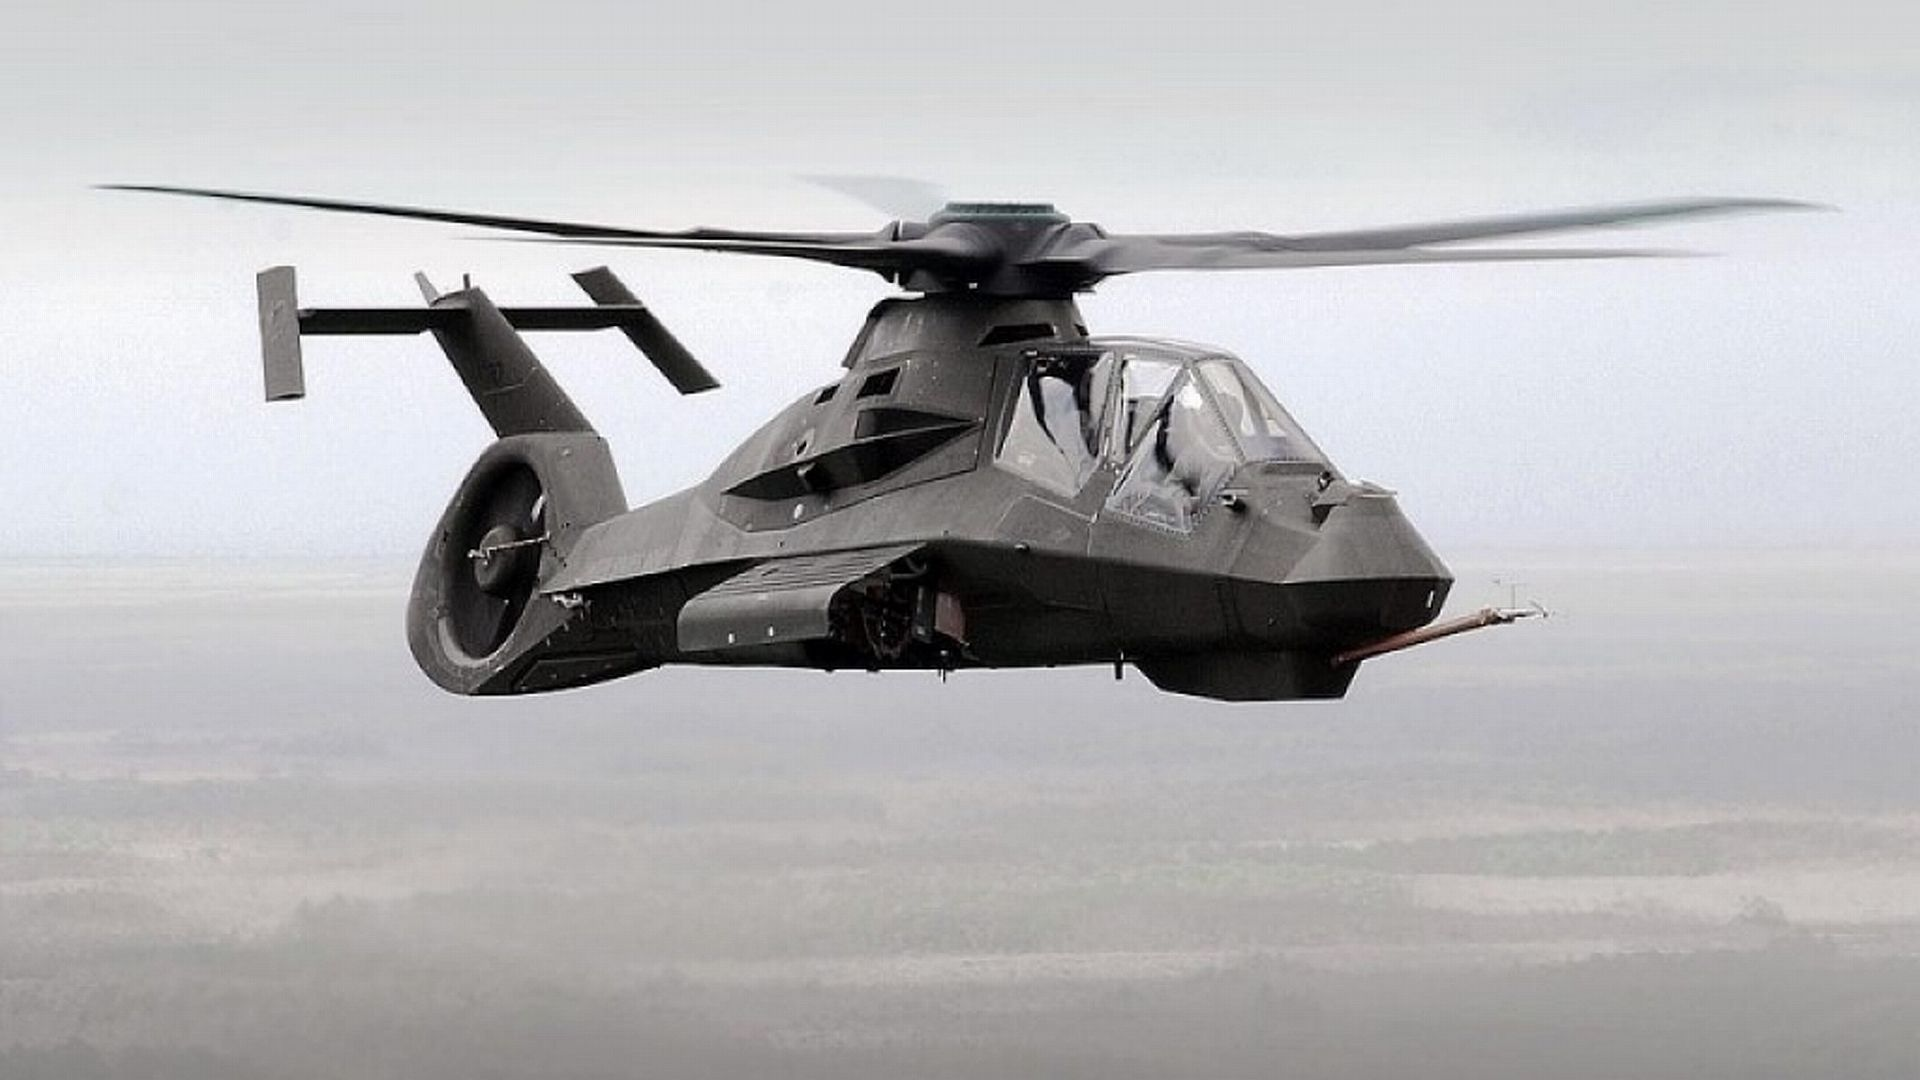 1920x1080 Bell Helicopter Wallpaper HD Amazing Wallpaperz | HD Wallpapers ...